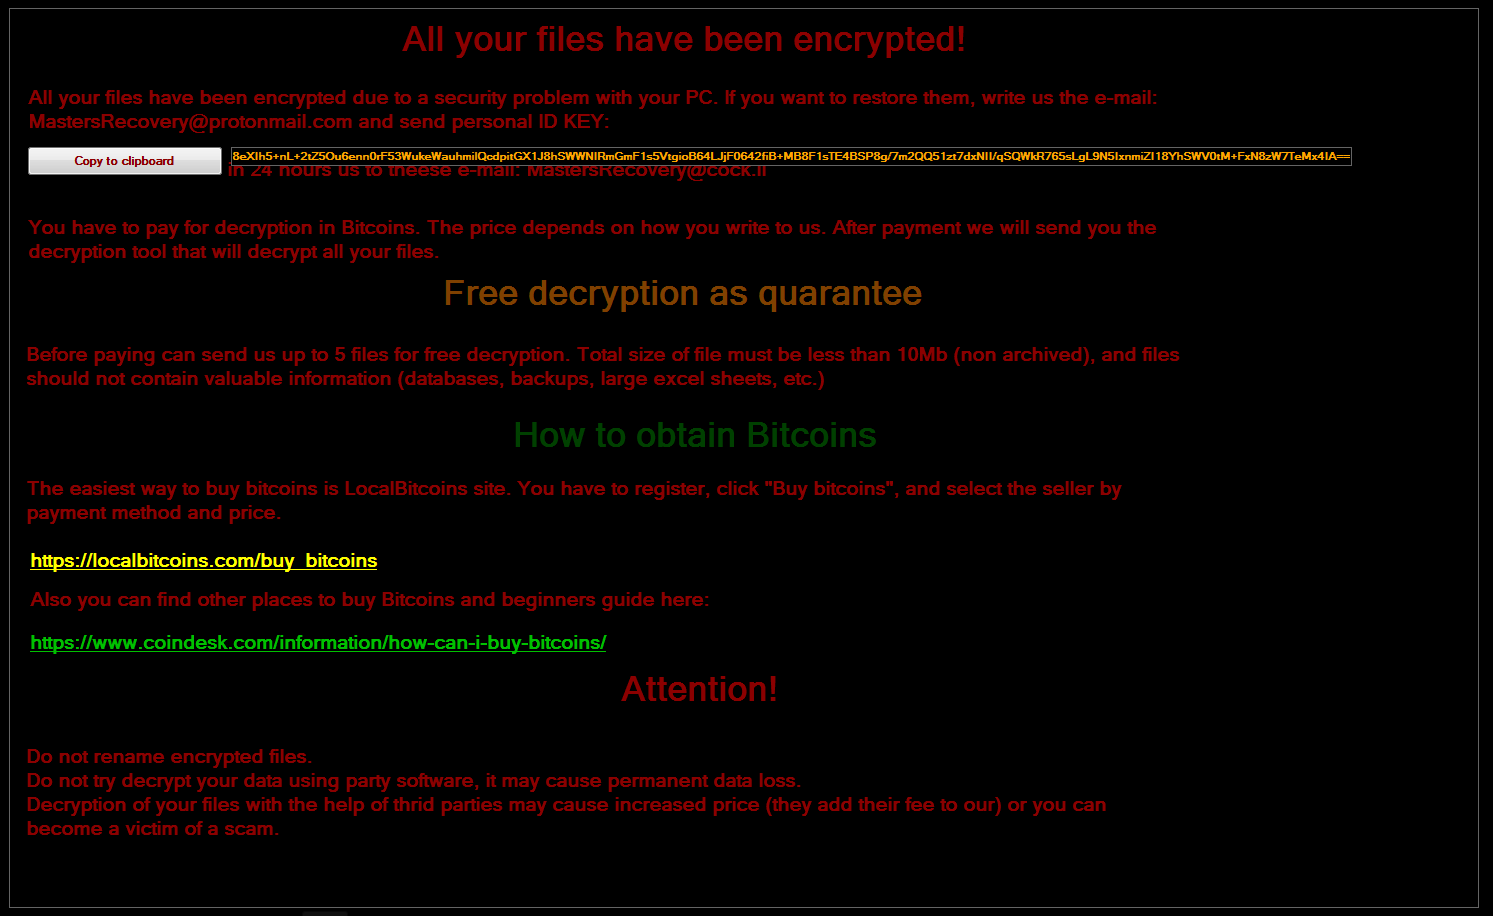 decrypt .[MastersRecovery@protonmail.com].Spartacus